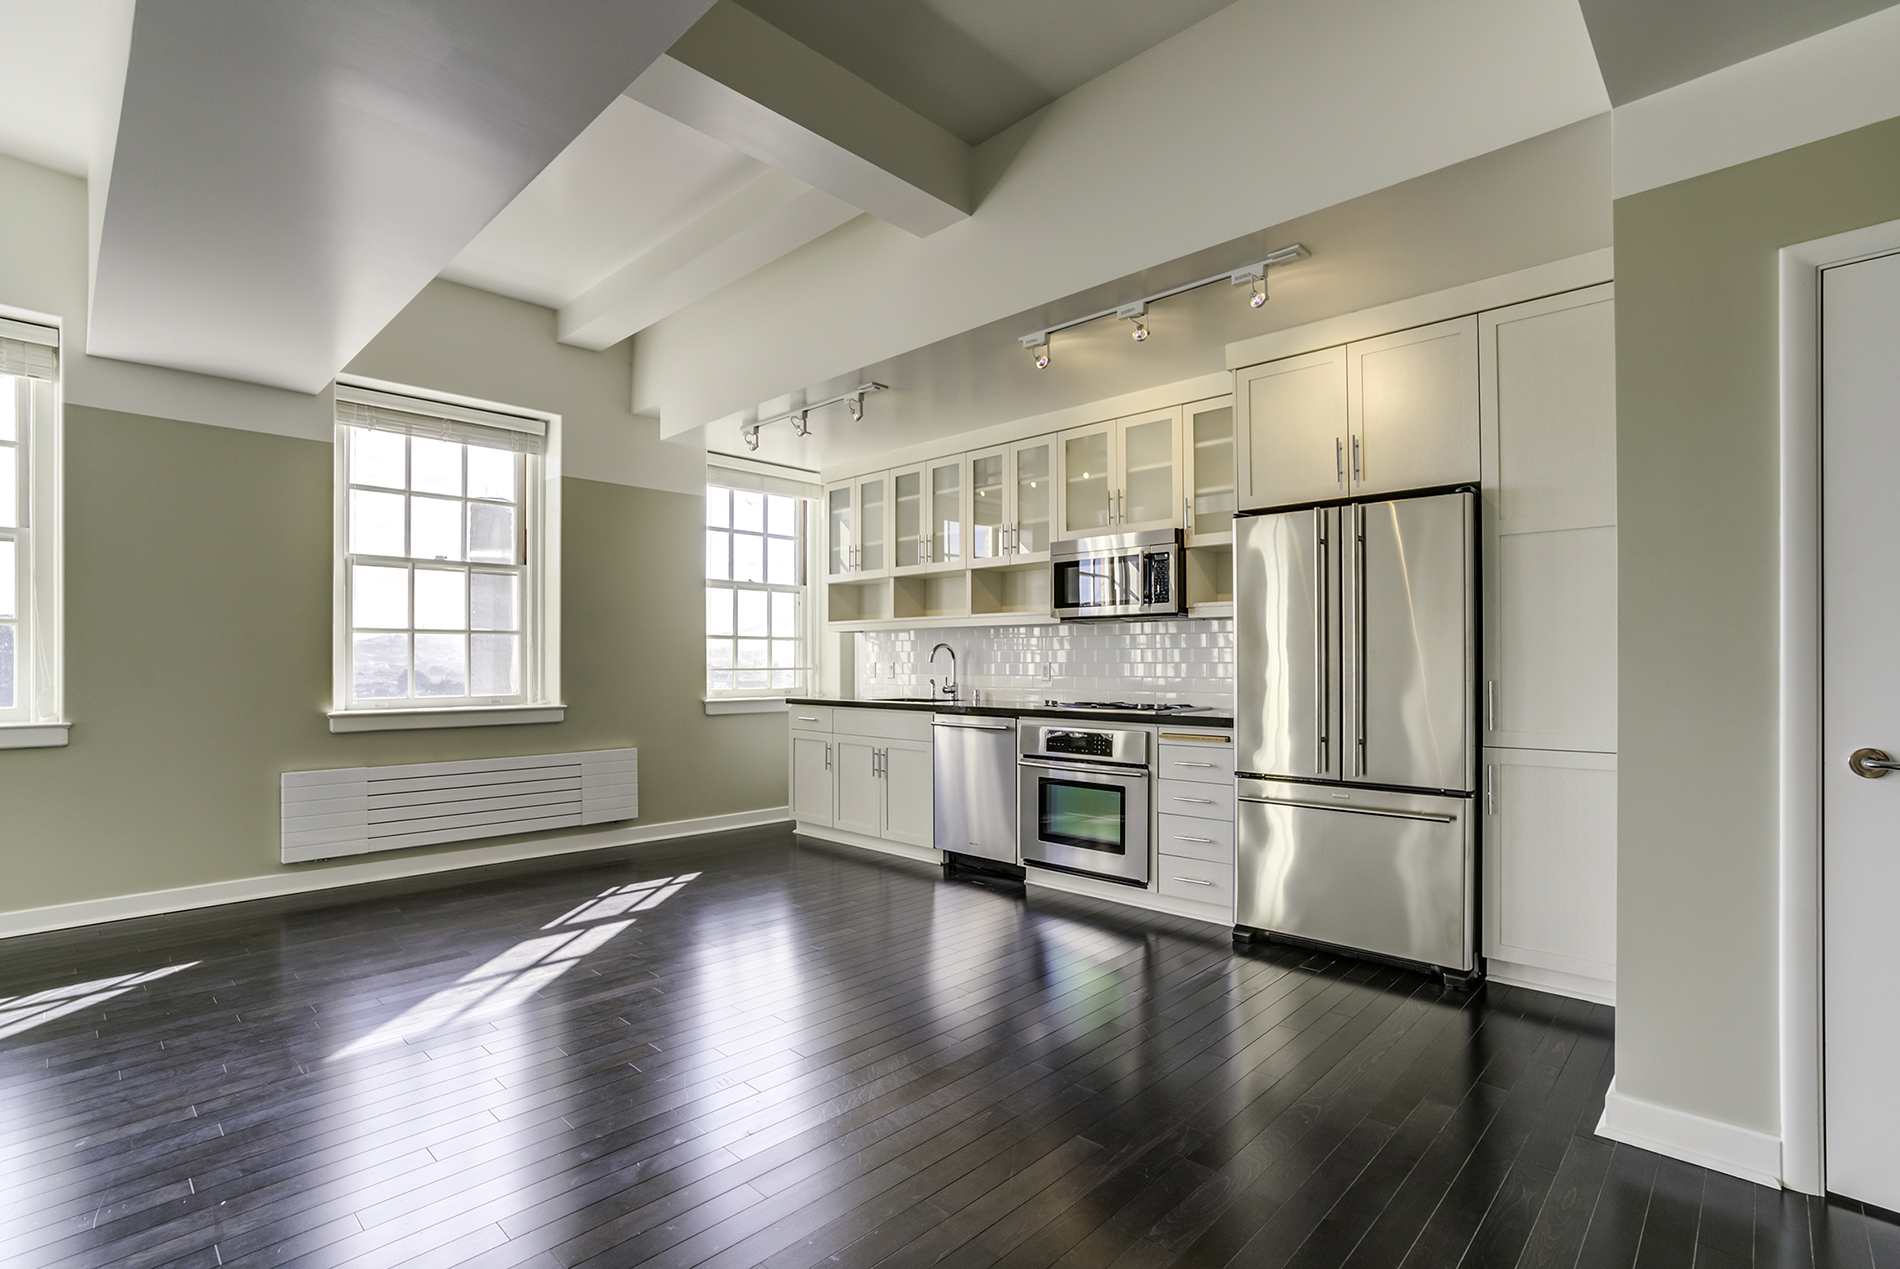 Kitchen in an apartment unit